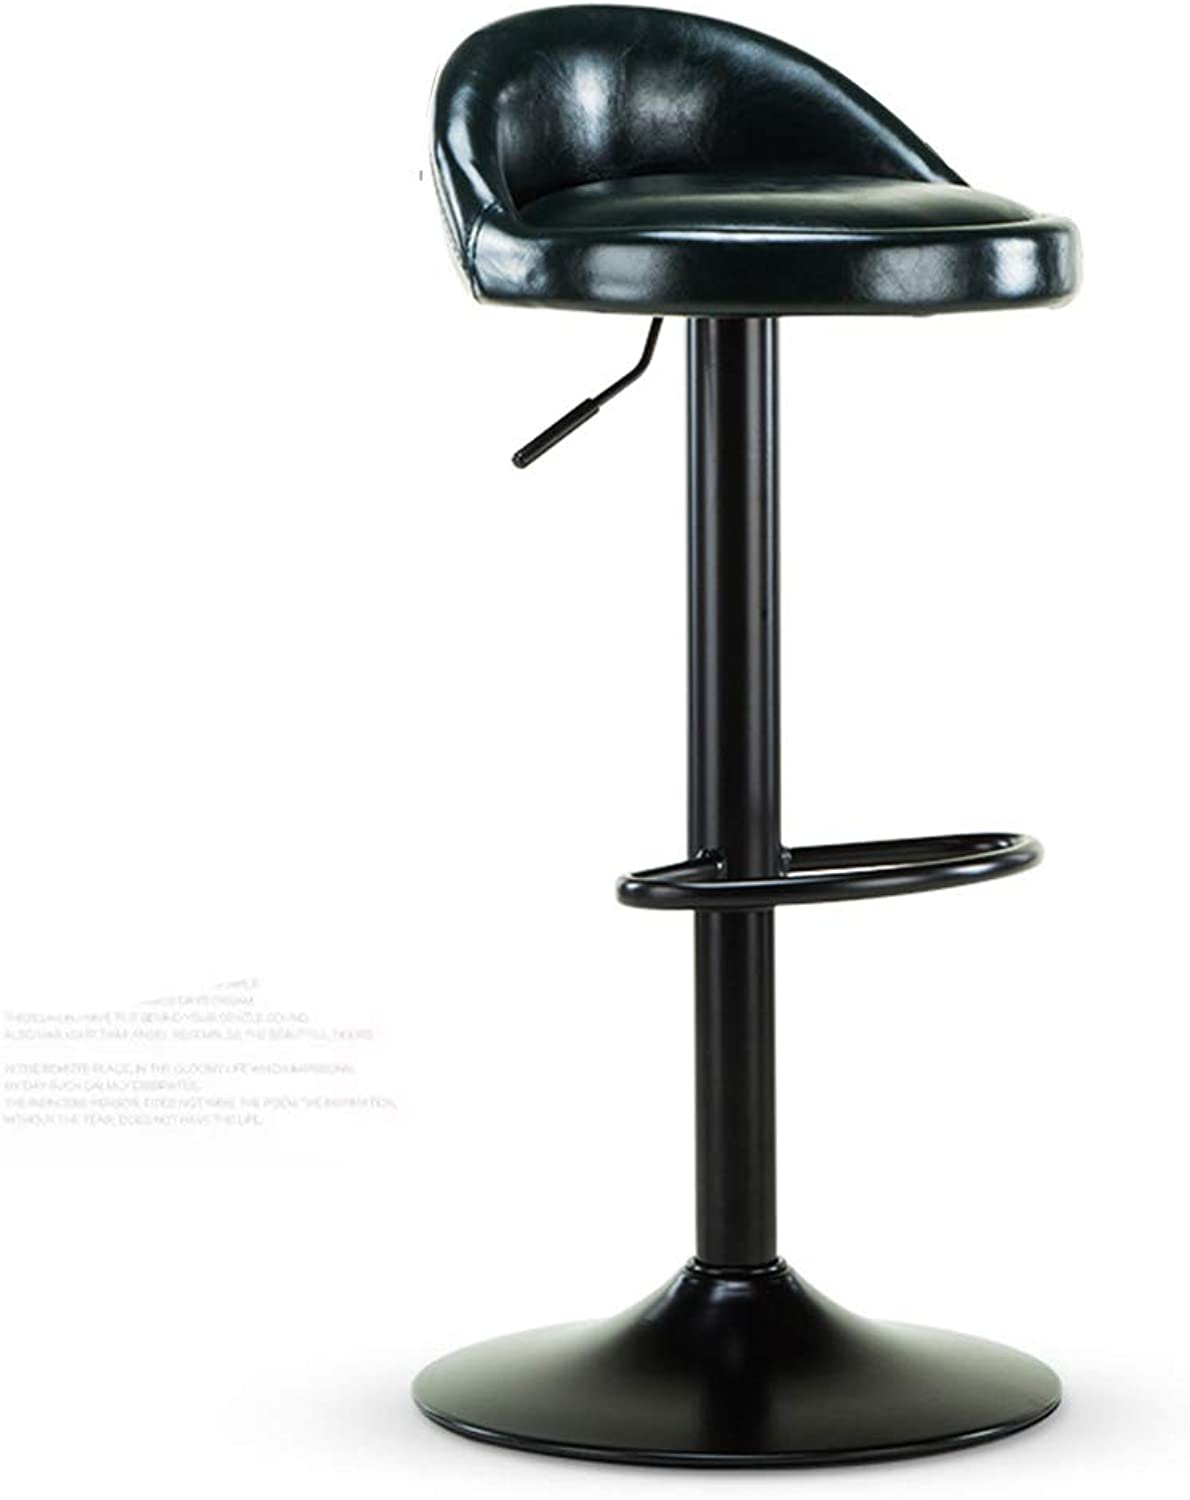 Barstools - Bar Stool Retro Dining Chair Height Adjustable Padded Back Rest Cushioned Chair Leather 0506A (color   Black)